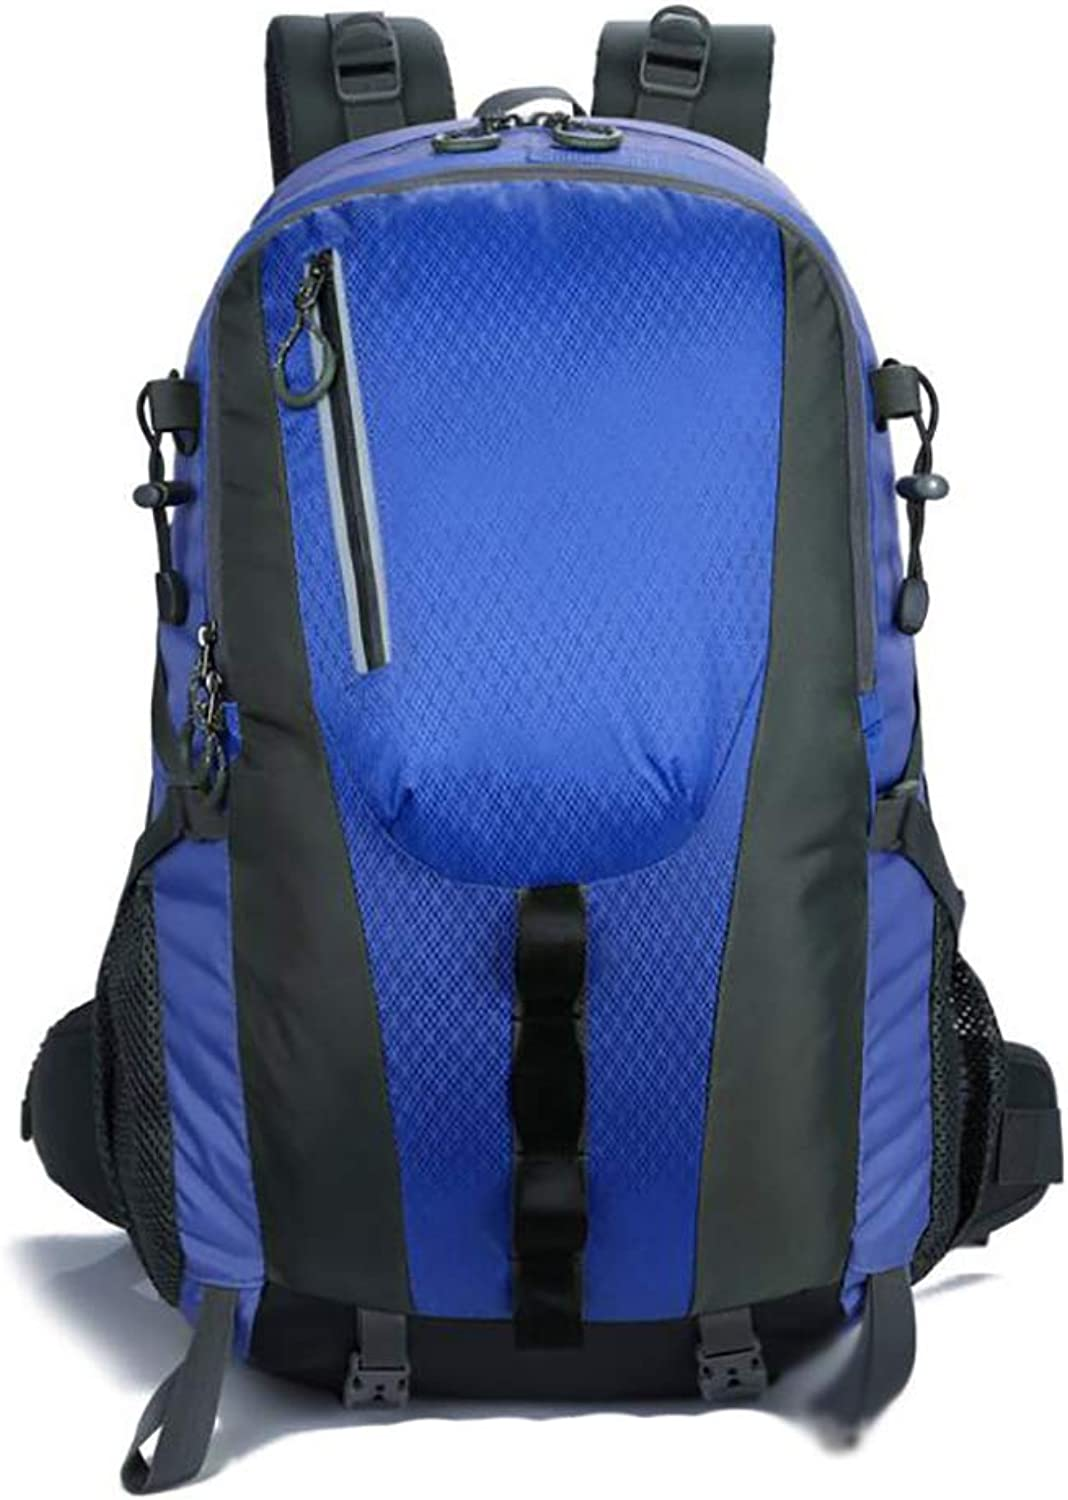 f51465567481 Hiking Backpack,3655L Travel Backpack Water Resistant Breathable ...